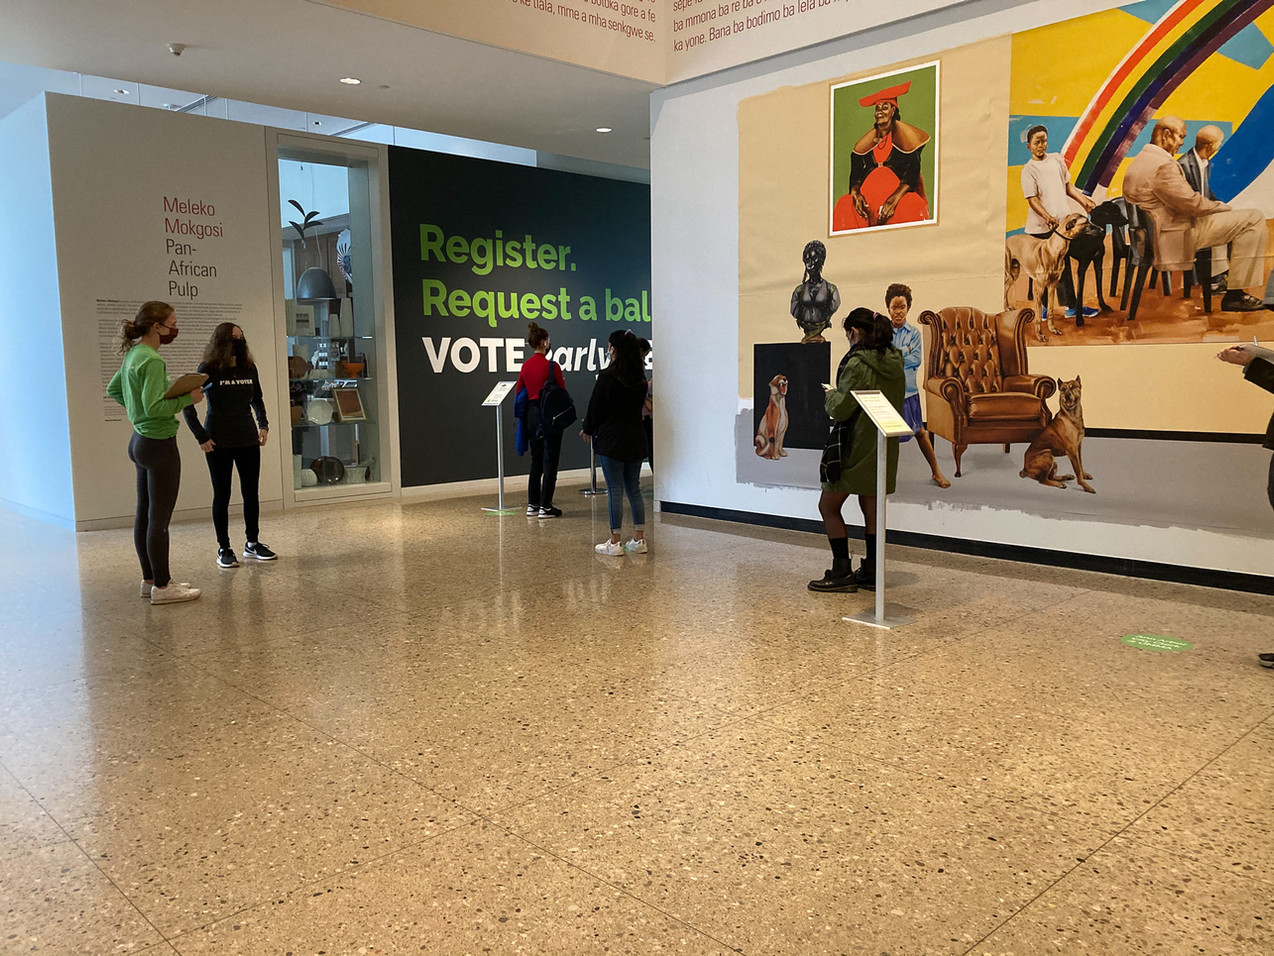 We situated the clerk's office inside an art museum — an unexpected civic space that elevated the experience of voting.